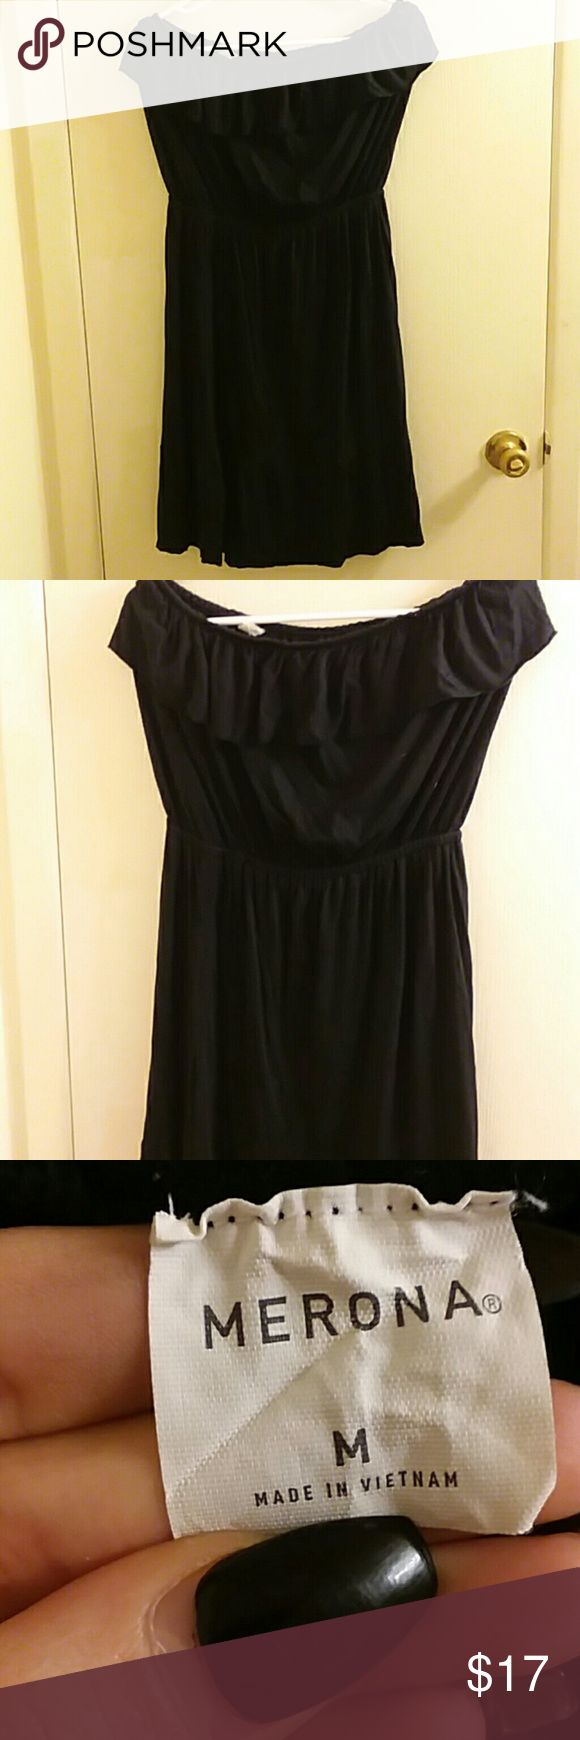 Black sundress bundle Both worn twice black sundress size medium second dress is size small fits medium and from fashion bug comes with free gift too Merona Dresses